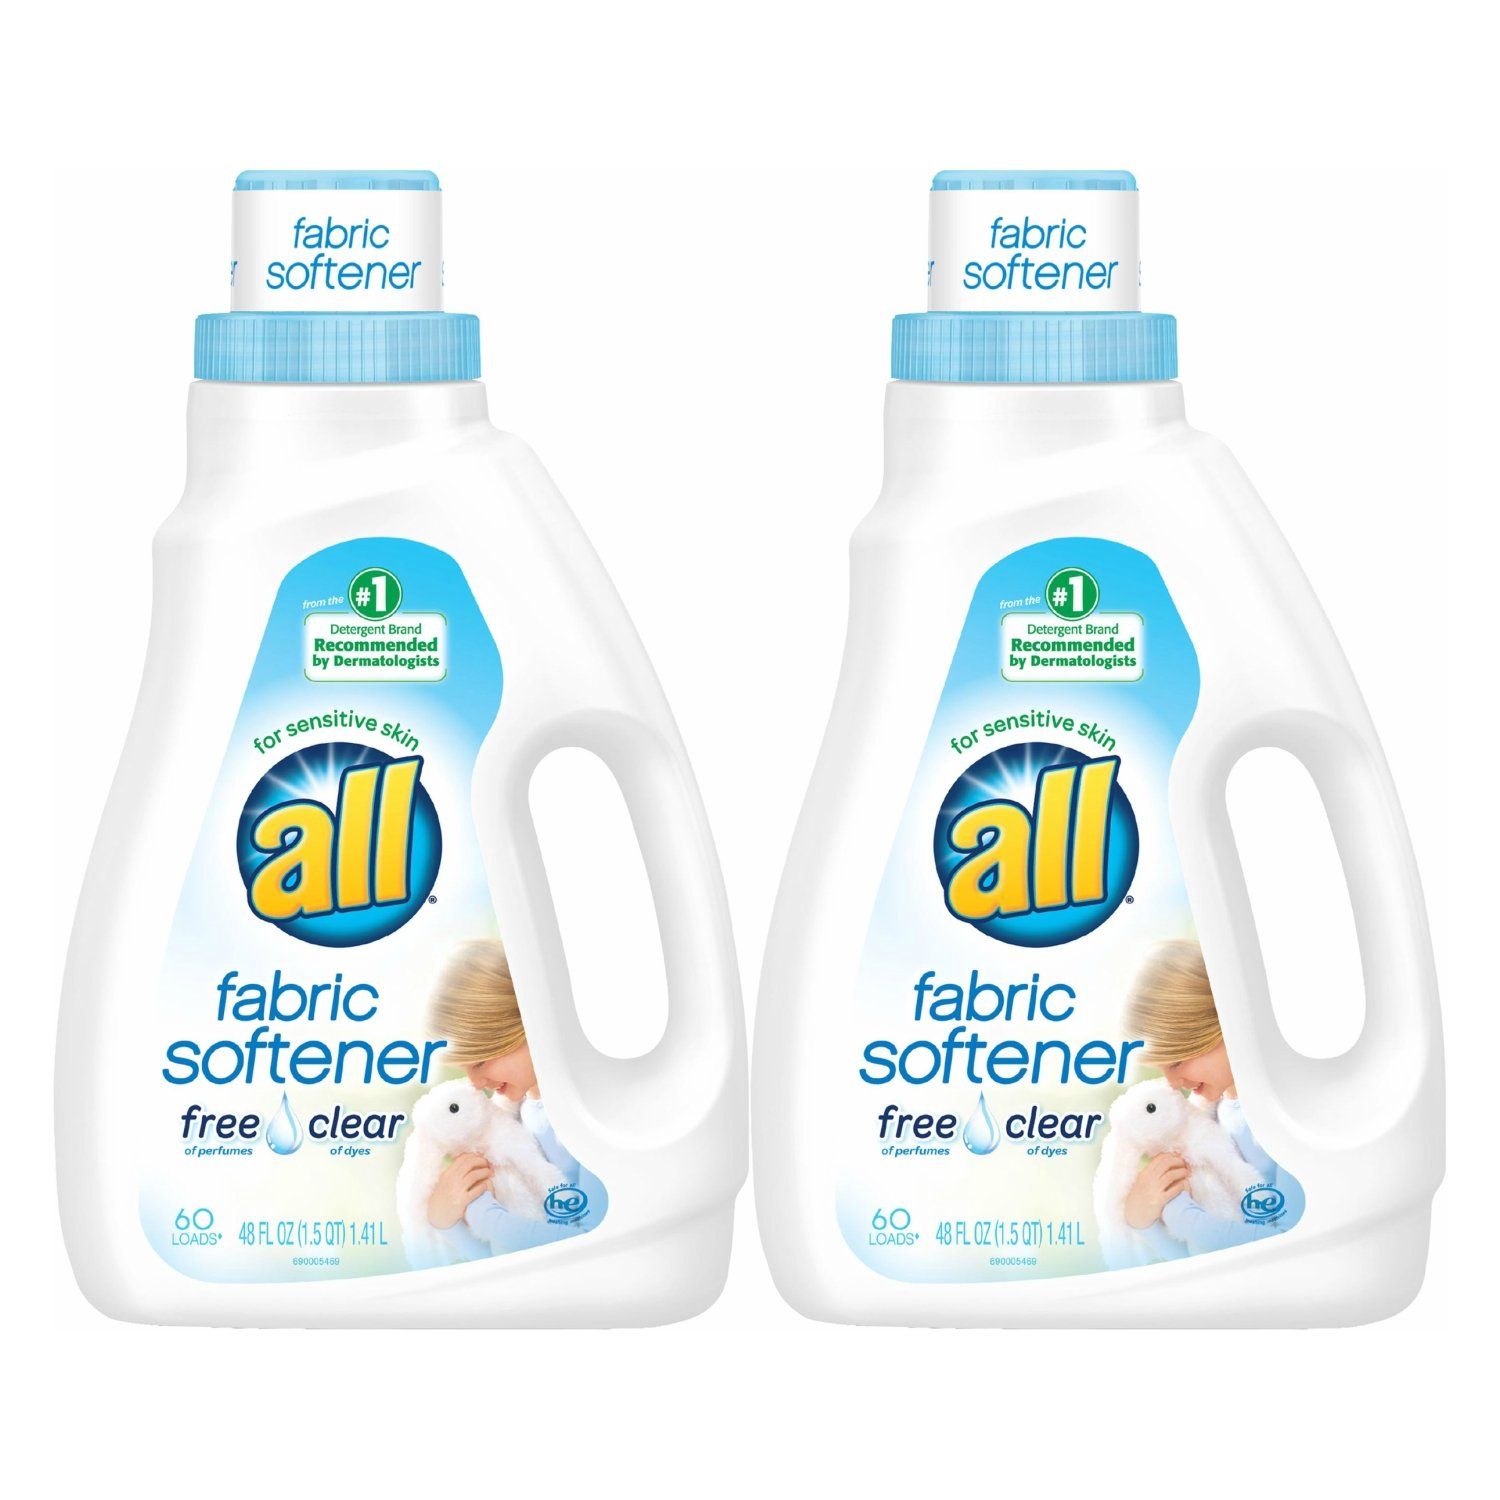 all Liquid Fabric Softener, Free Clear for Sensitive Skin, 48 Fluid Ounces, 60 Loads (Pack of 2)